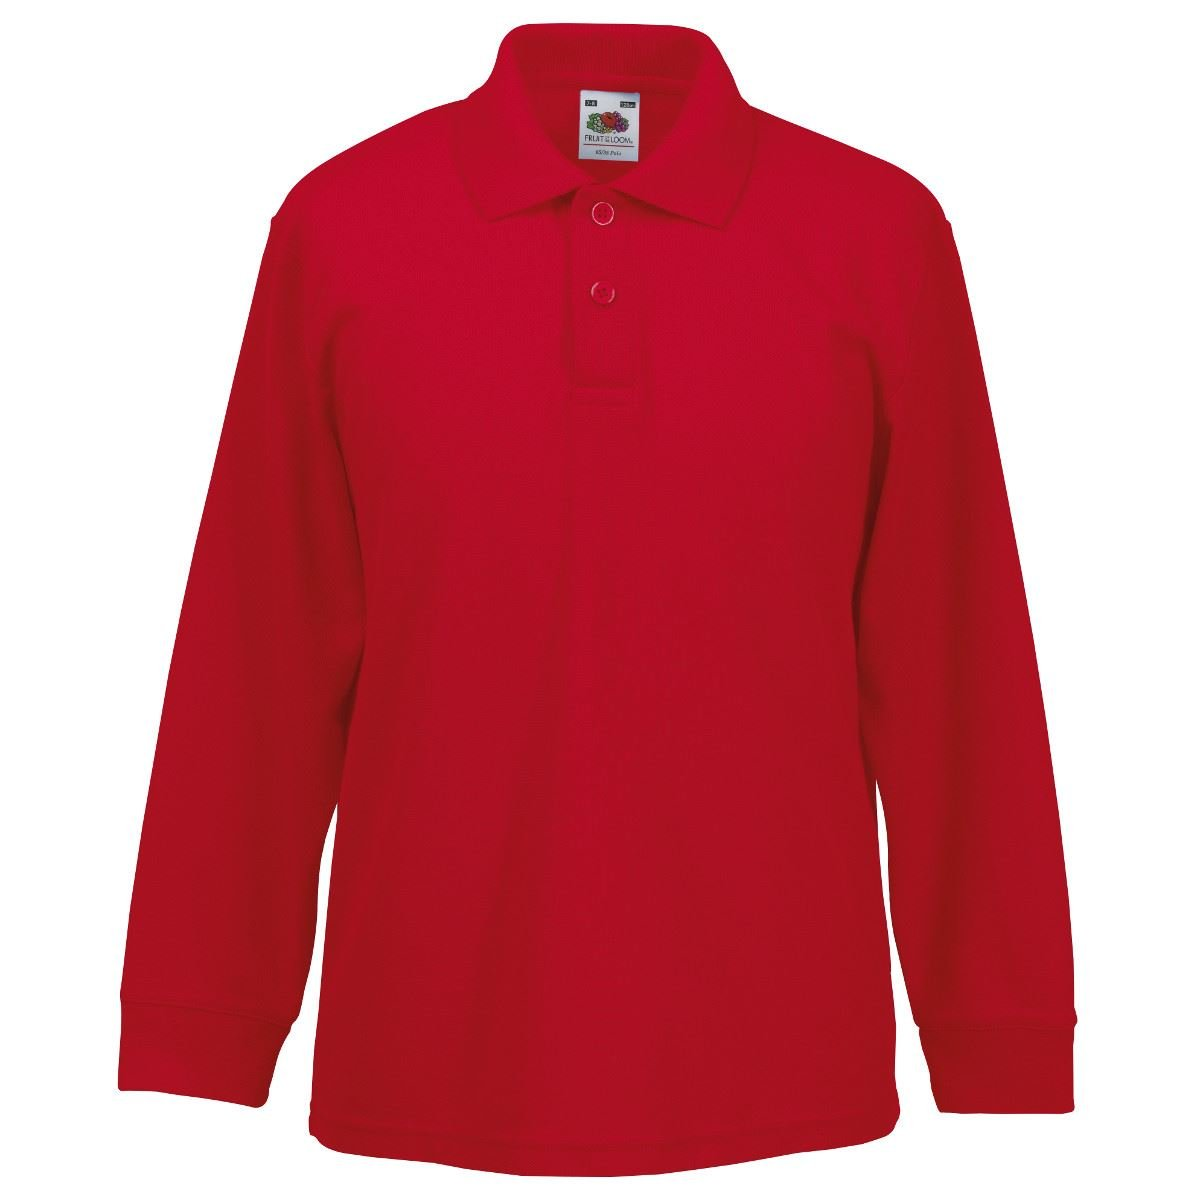 Fruit Of The Loom Kids Childrens Long Sleeve 65/35 Polo Shirt Red 3-4 Years